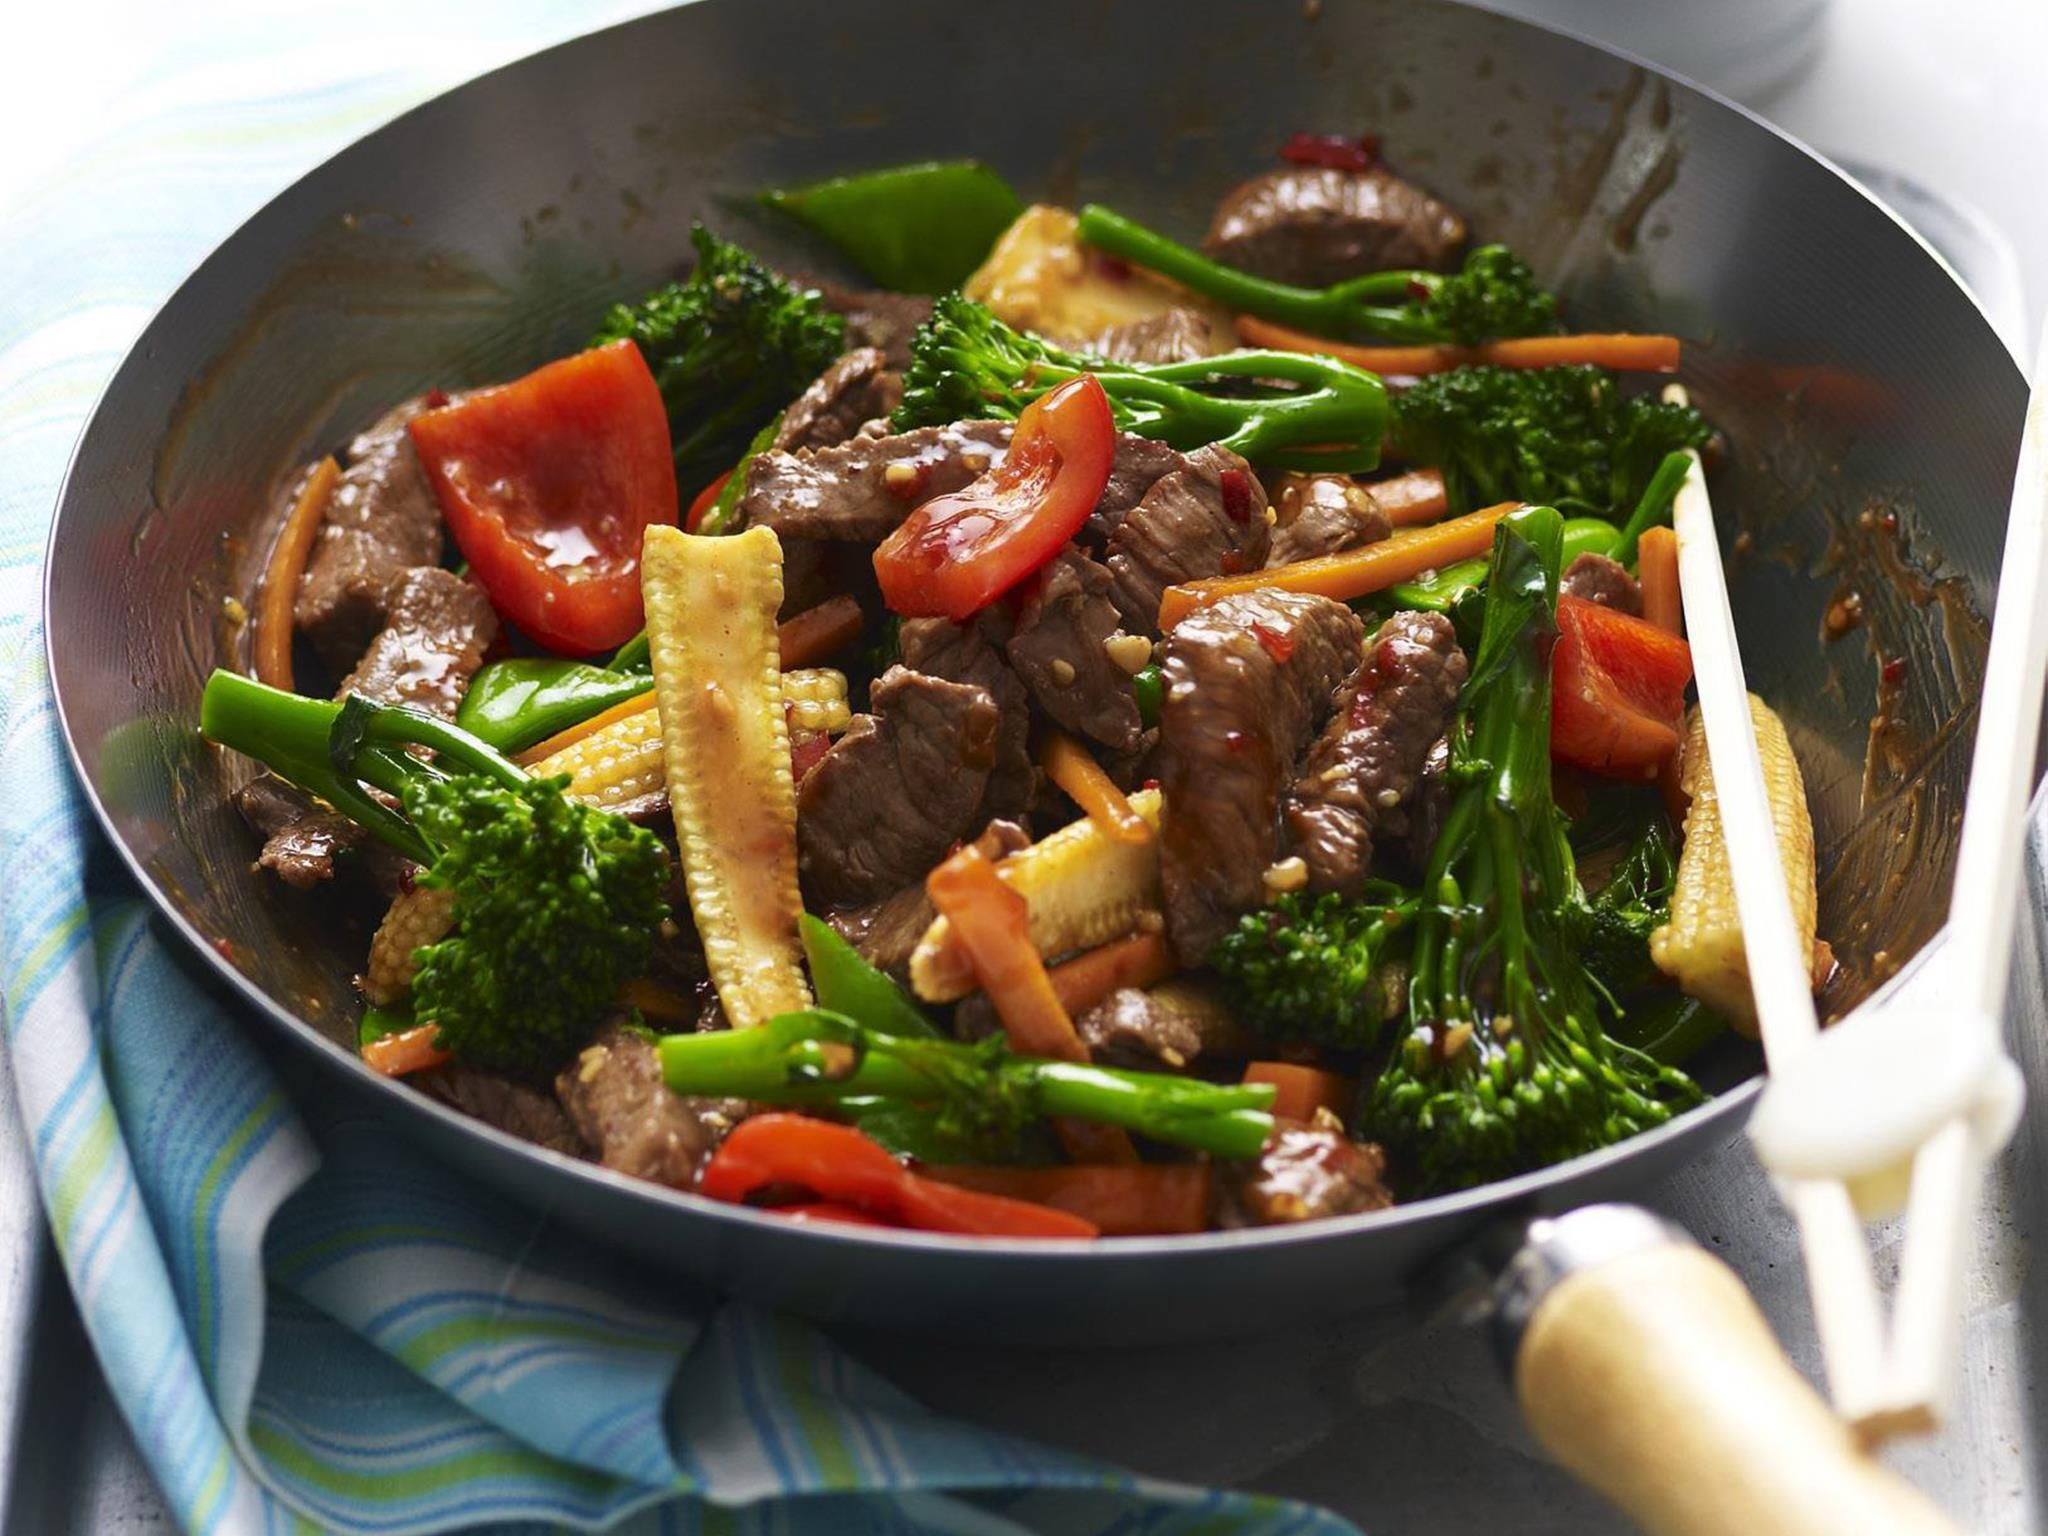 Garlic Beef Stir Fry Recipe Beef Stir Fry Recipes Beef Stir Fry Garlic Beef